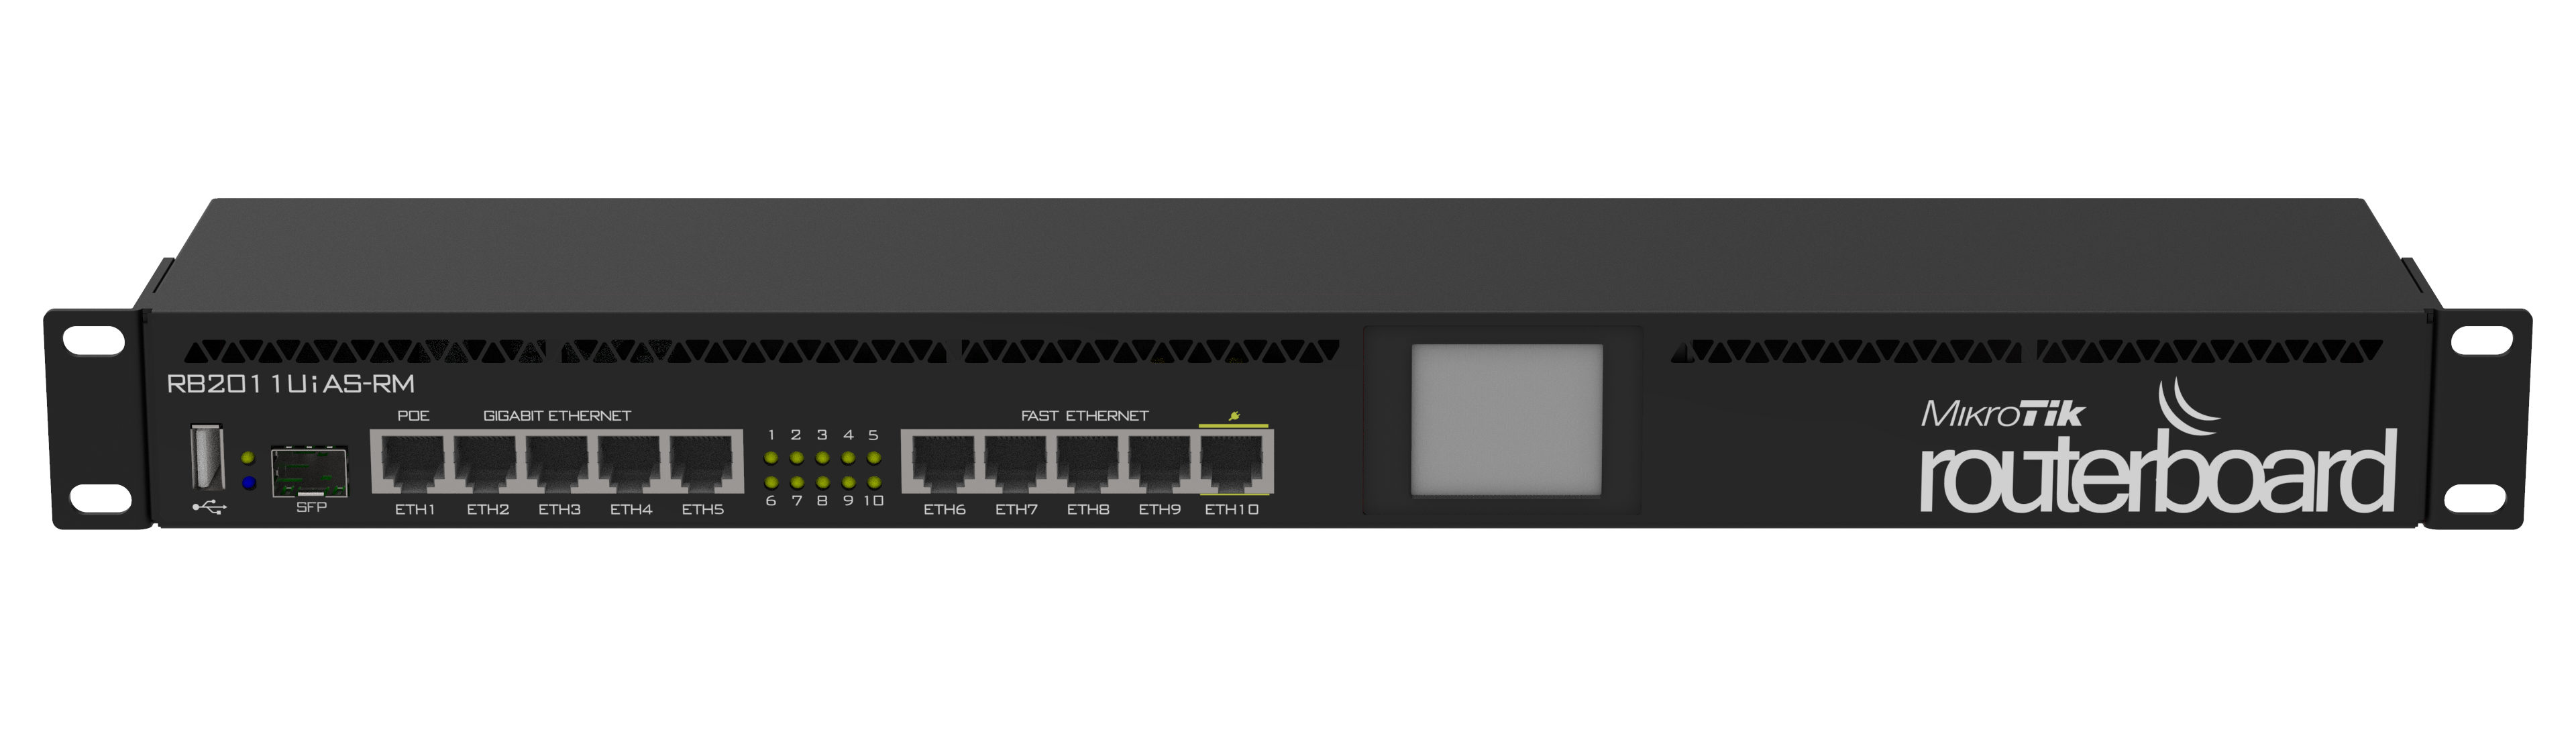 MikroTik Routers and Wireless - Products: RB2011UiAS-RM